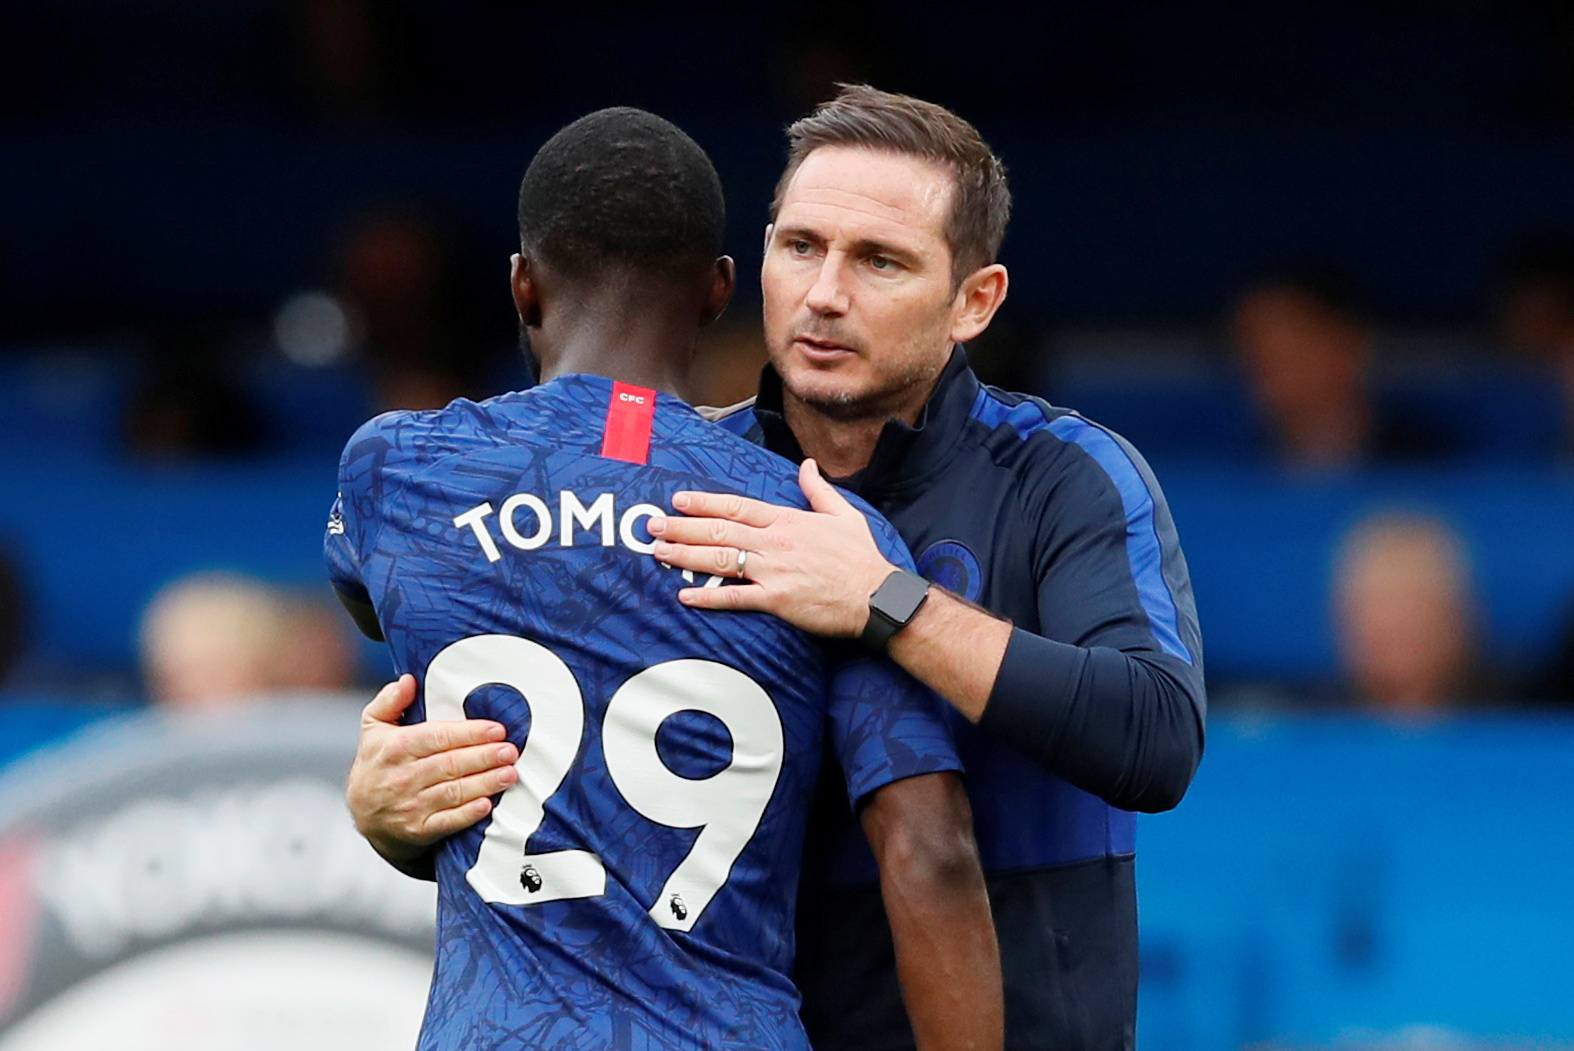 Frank Lampard talks about talks about Tomori